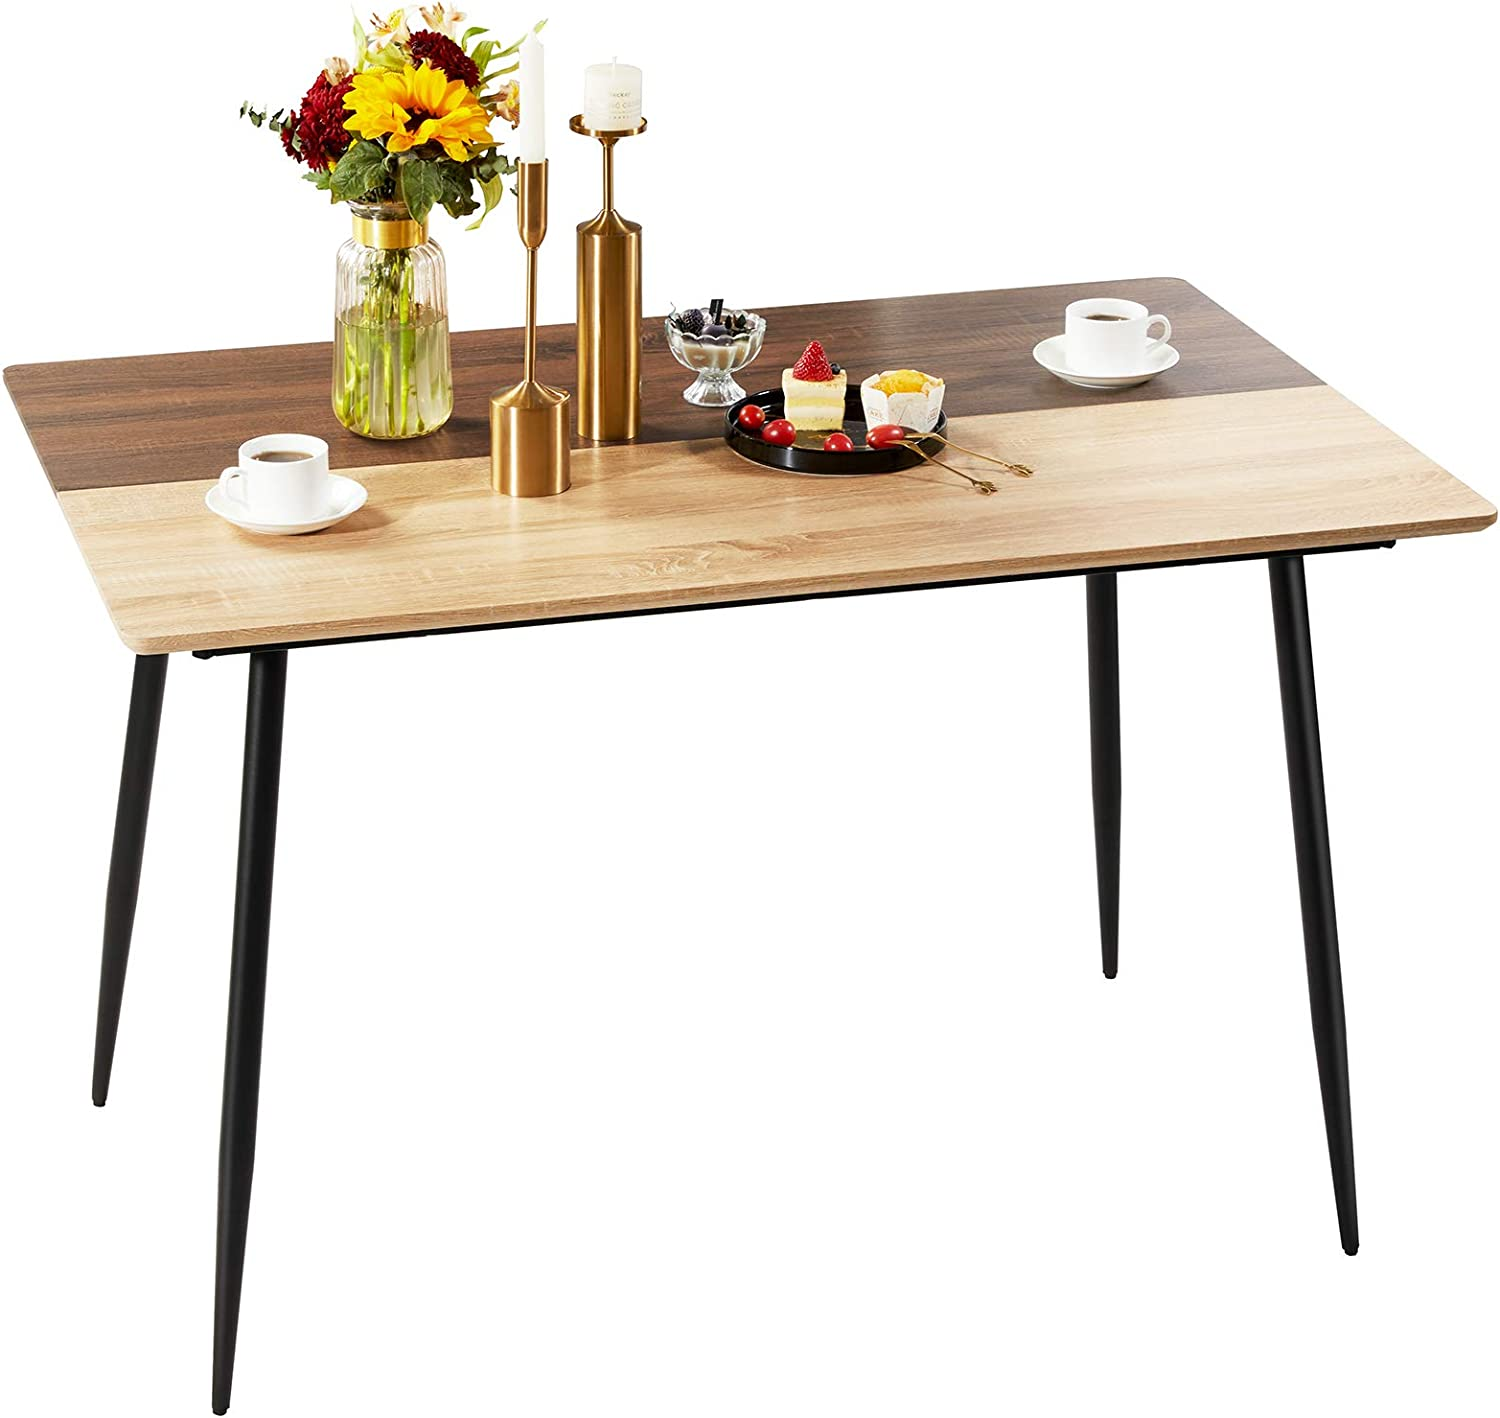 GreenForest Dining Table Modern Rectangle 47''x 30'' Kitchen Table with Two-Tone Color Top and Metal Legs, Oak and Walnut